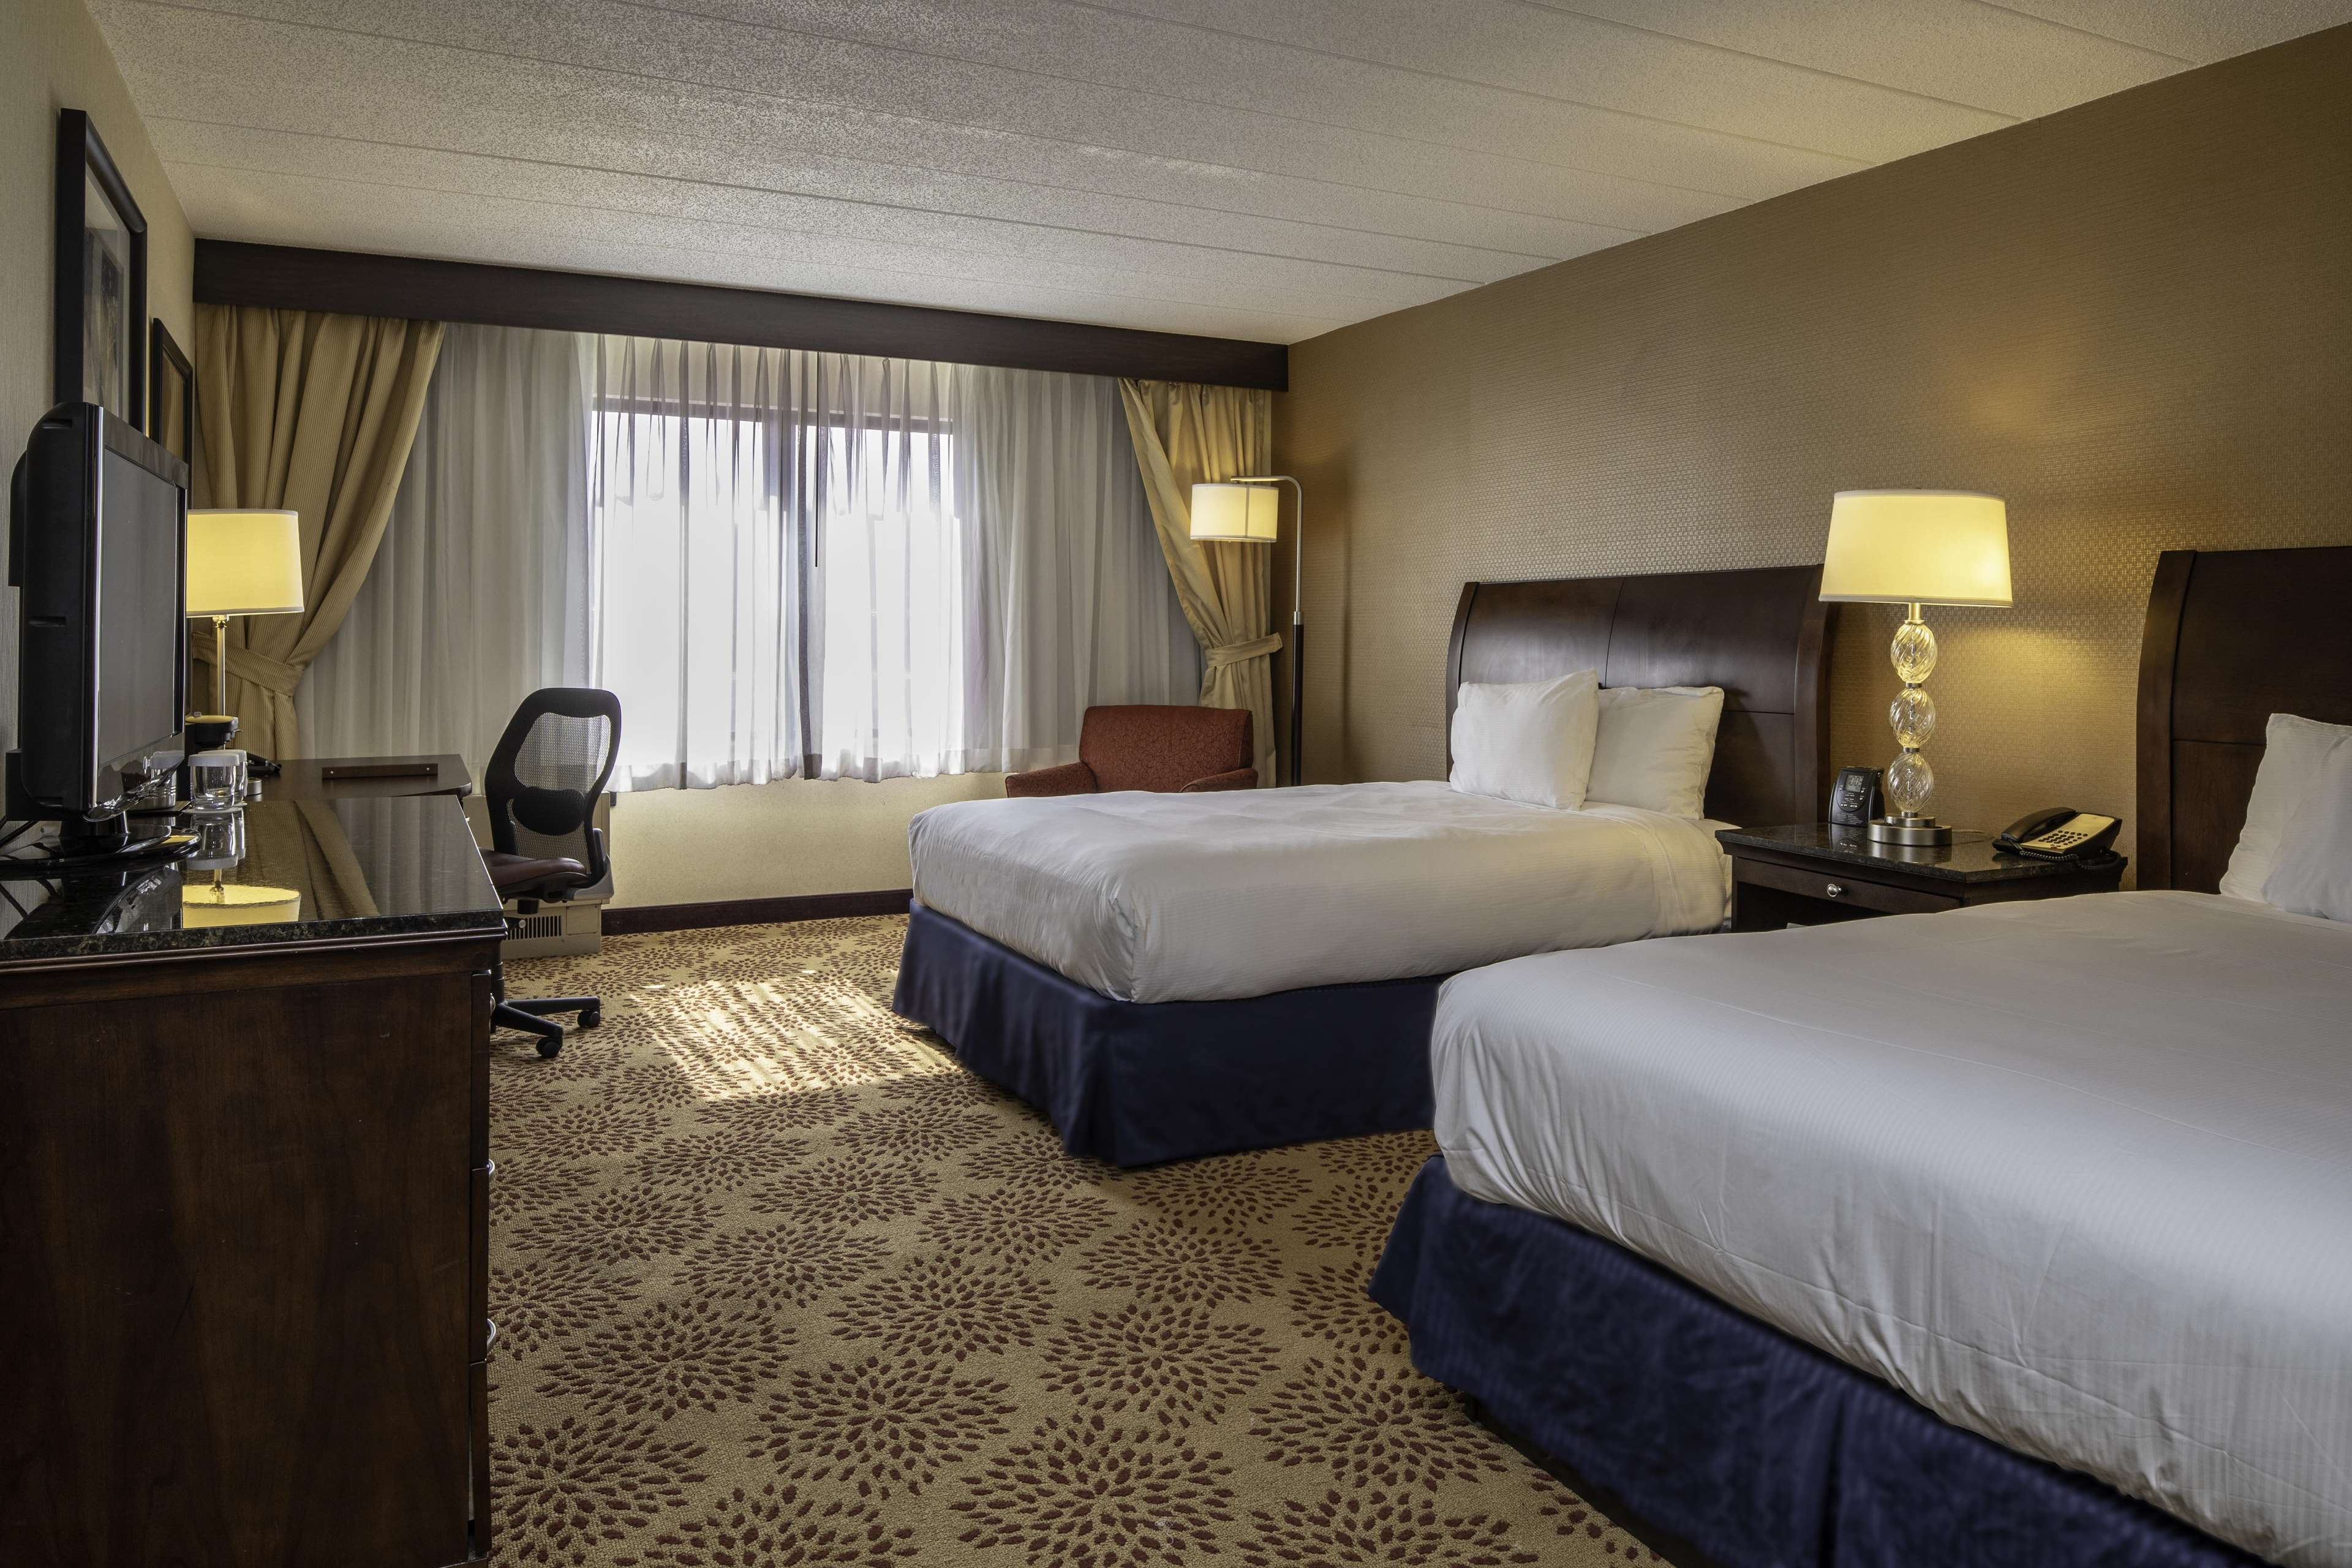 DoubleTree by Hilton Hotel Pittsburgh - Monroeville Convention Center image 11